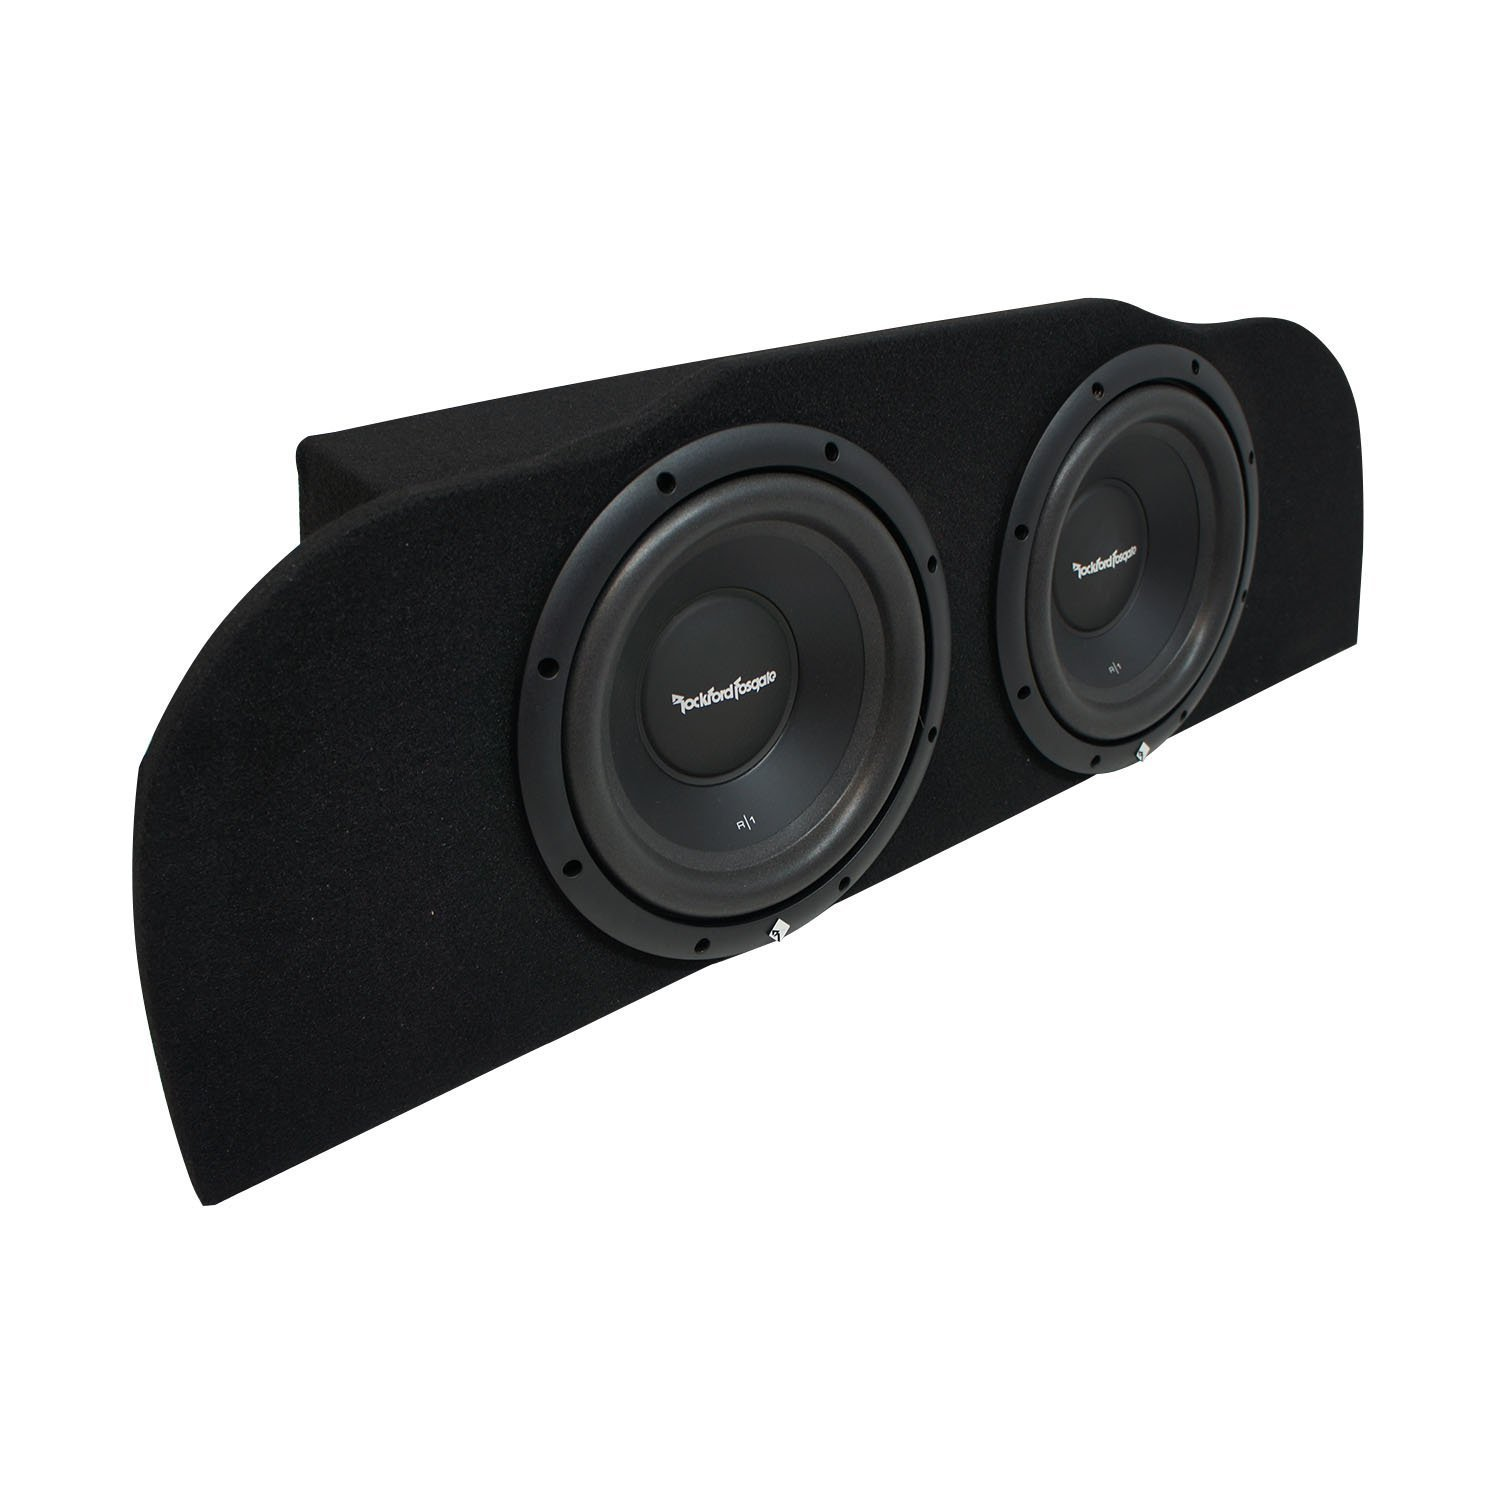 "2003-2015 Infiniti G35 Coupe Rockford Prime R1S410 Subwoofer Dual 10"" Sub Box Enclosure - Final 2 Ohm"